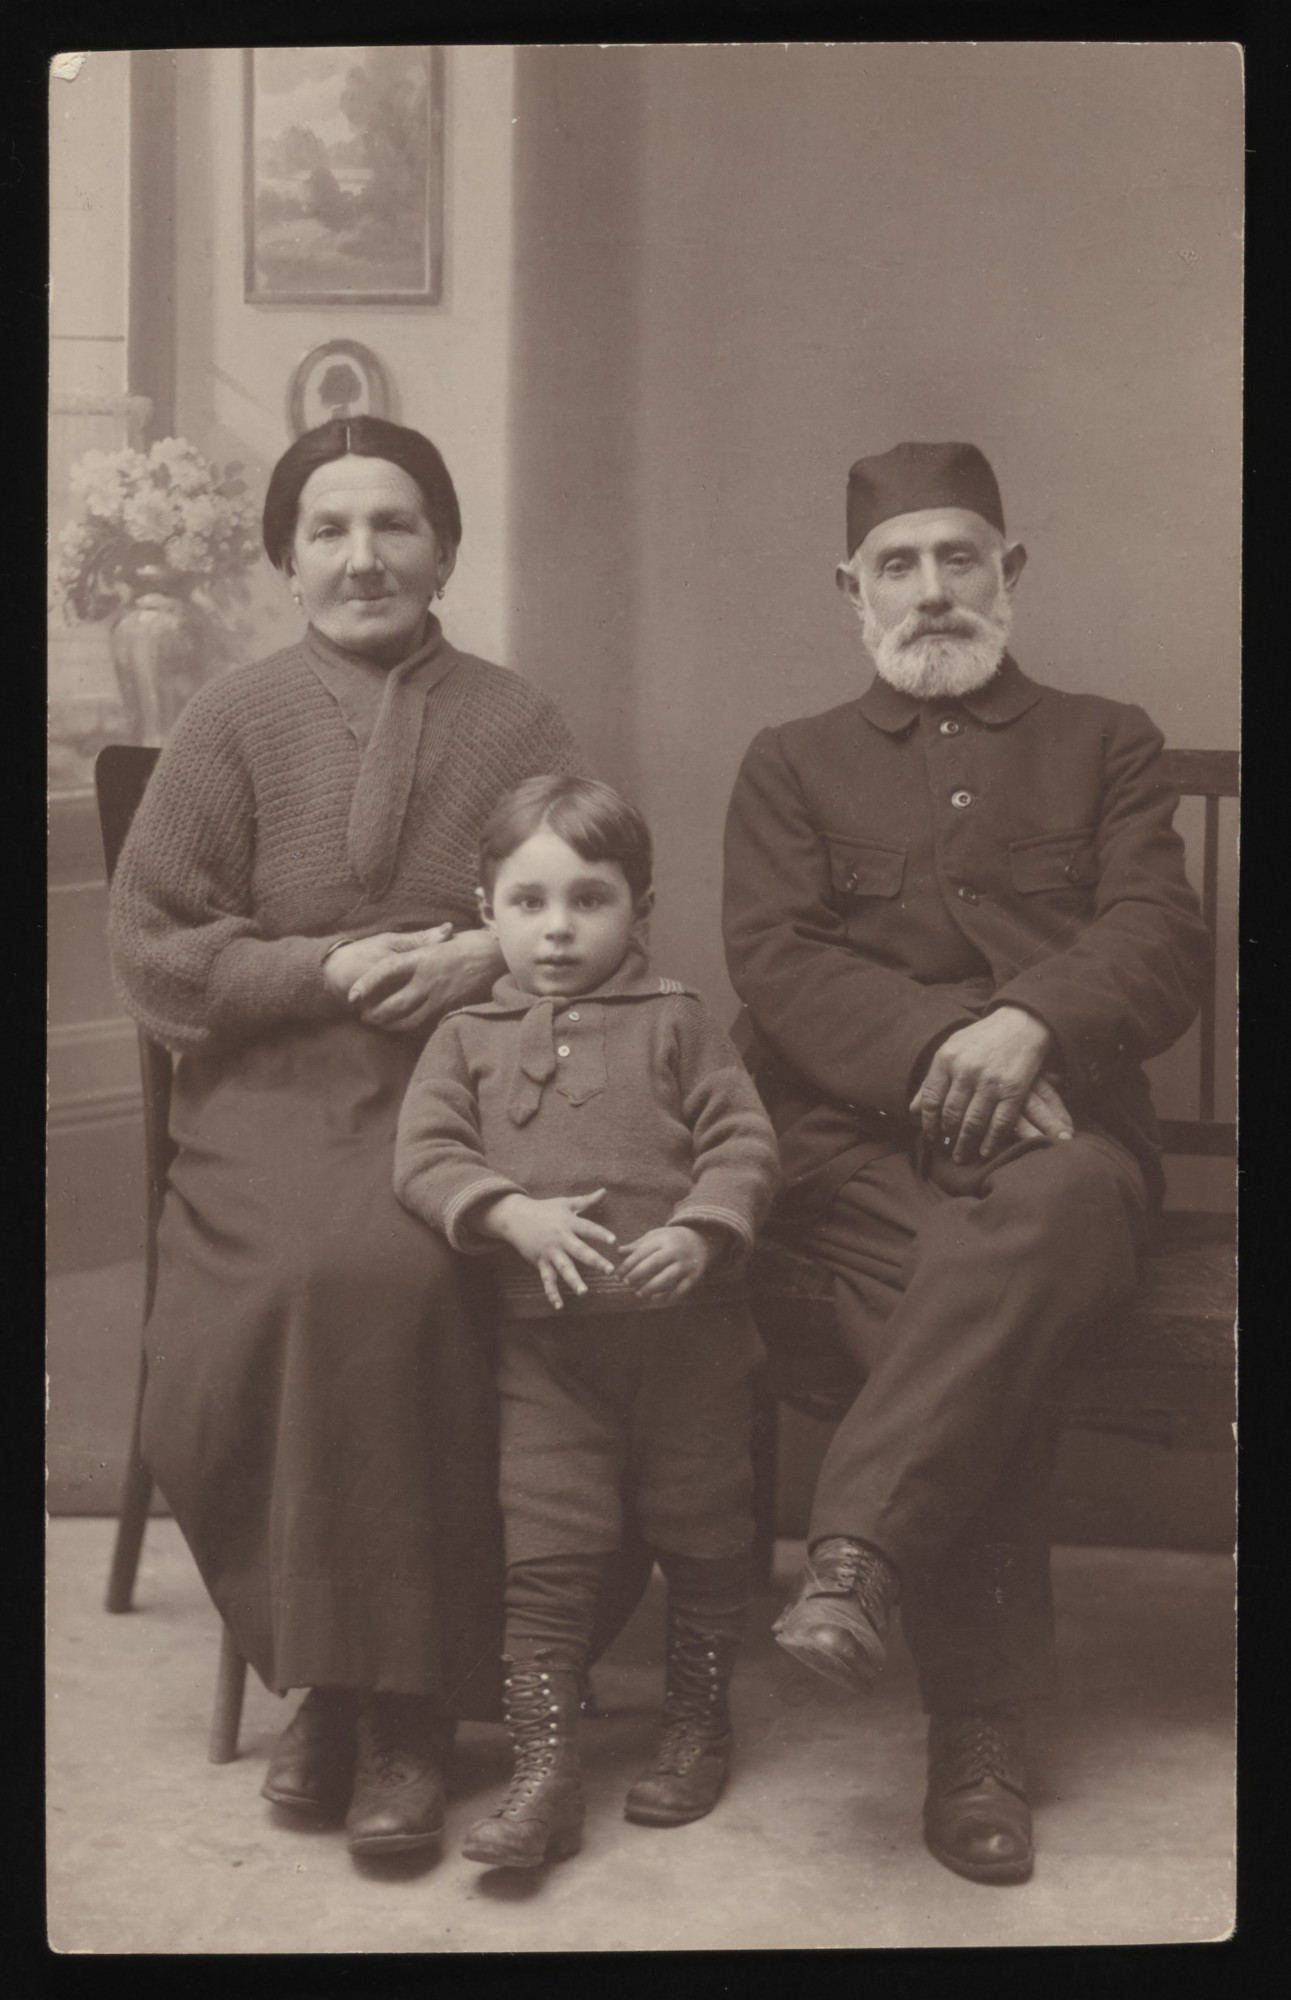 Studio portrait of religious grandparents and their young grandson.  Pictured are Chaim and Szajna Malenka and Elek Arbeiter.